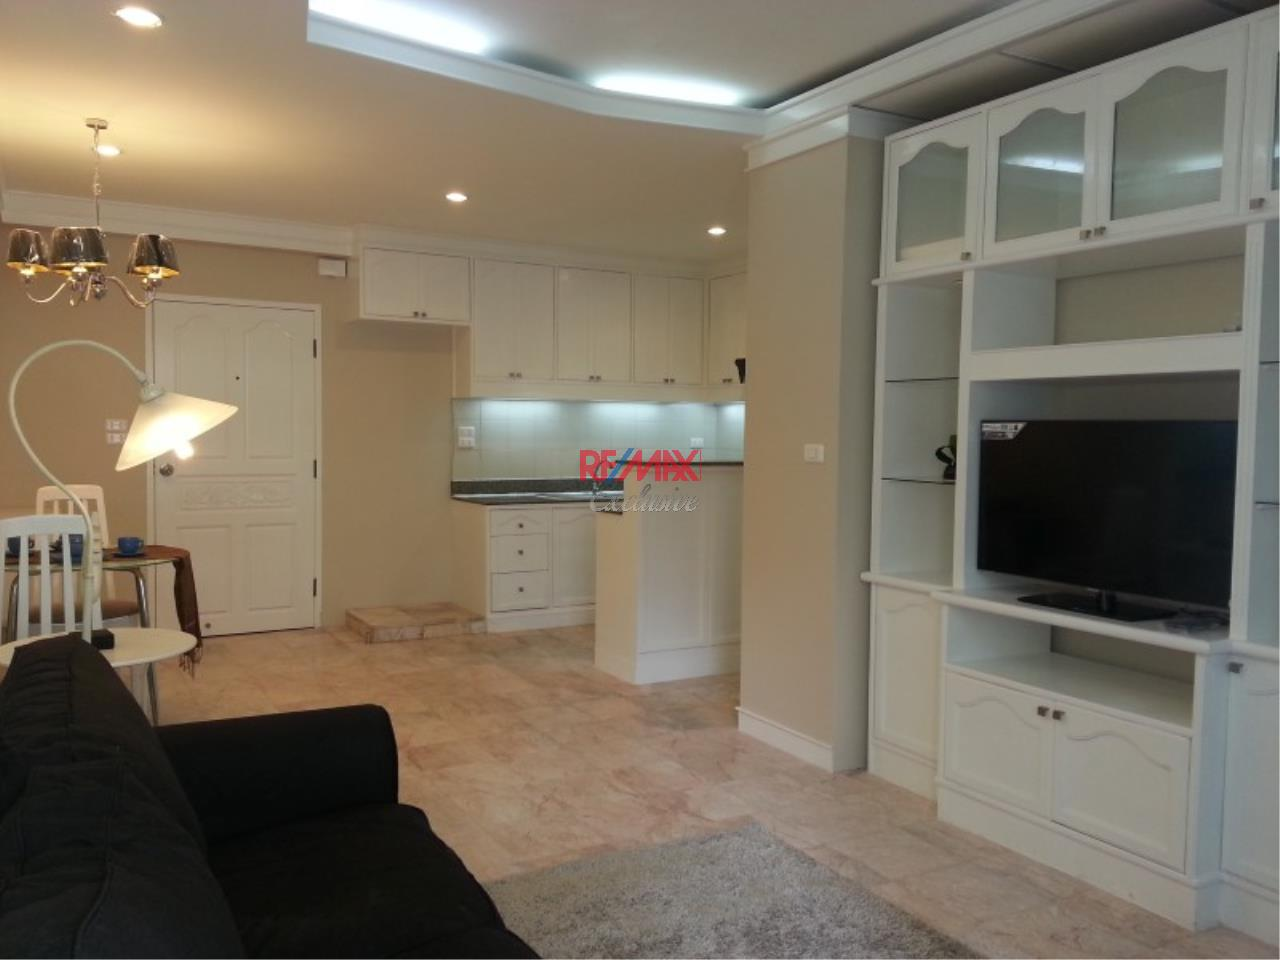 RE/MAX Exclusive Agency's Big 1 Bedroom for sale at Sarajai Mansion 4800000 2